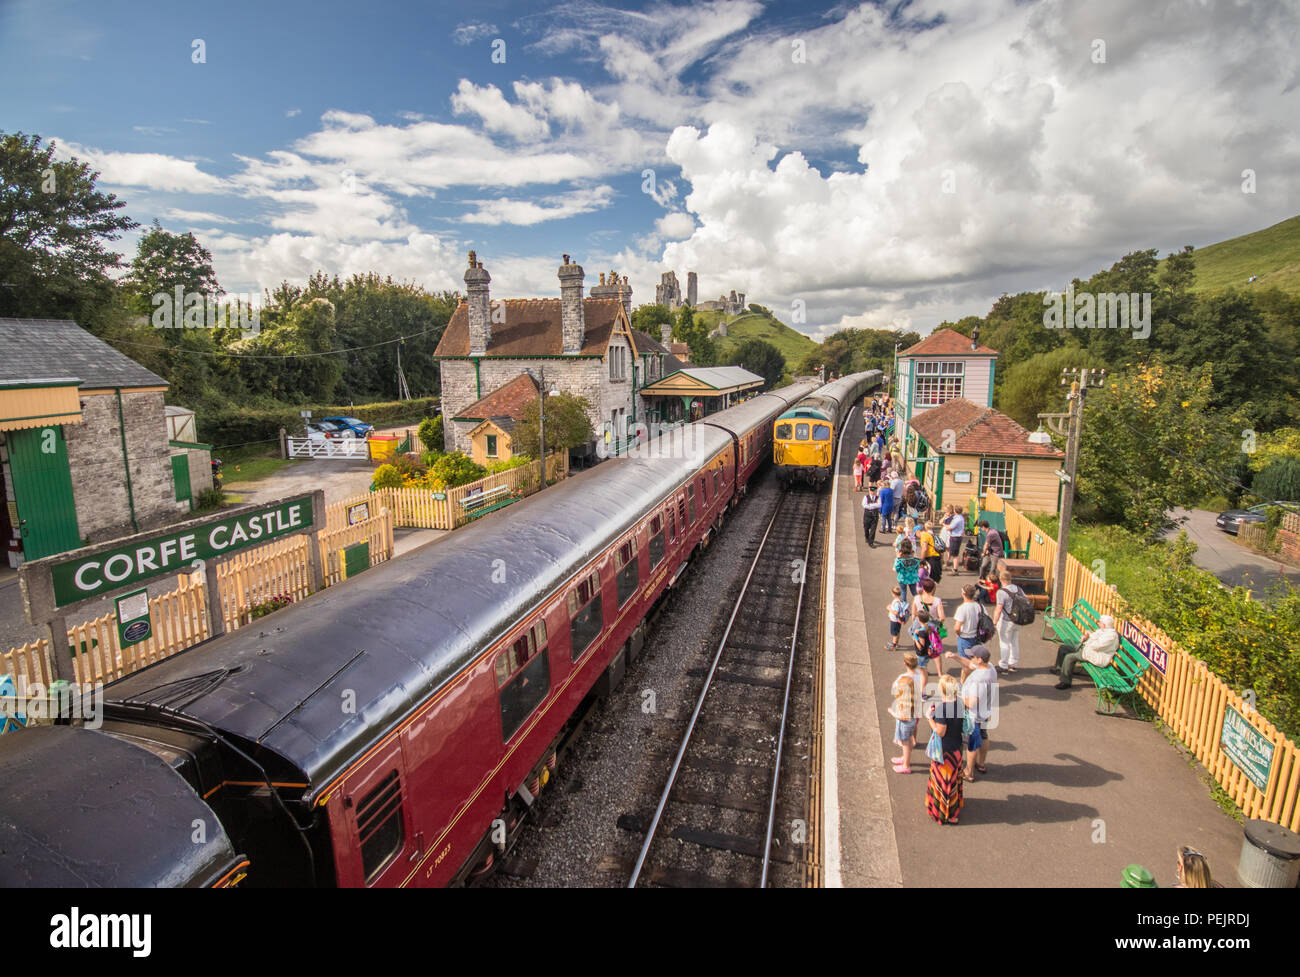 Corfe Castle train station, Swanage Railway, near Wareham, Dorset, UK - Stock Image